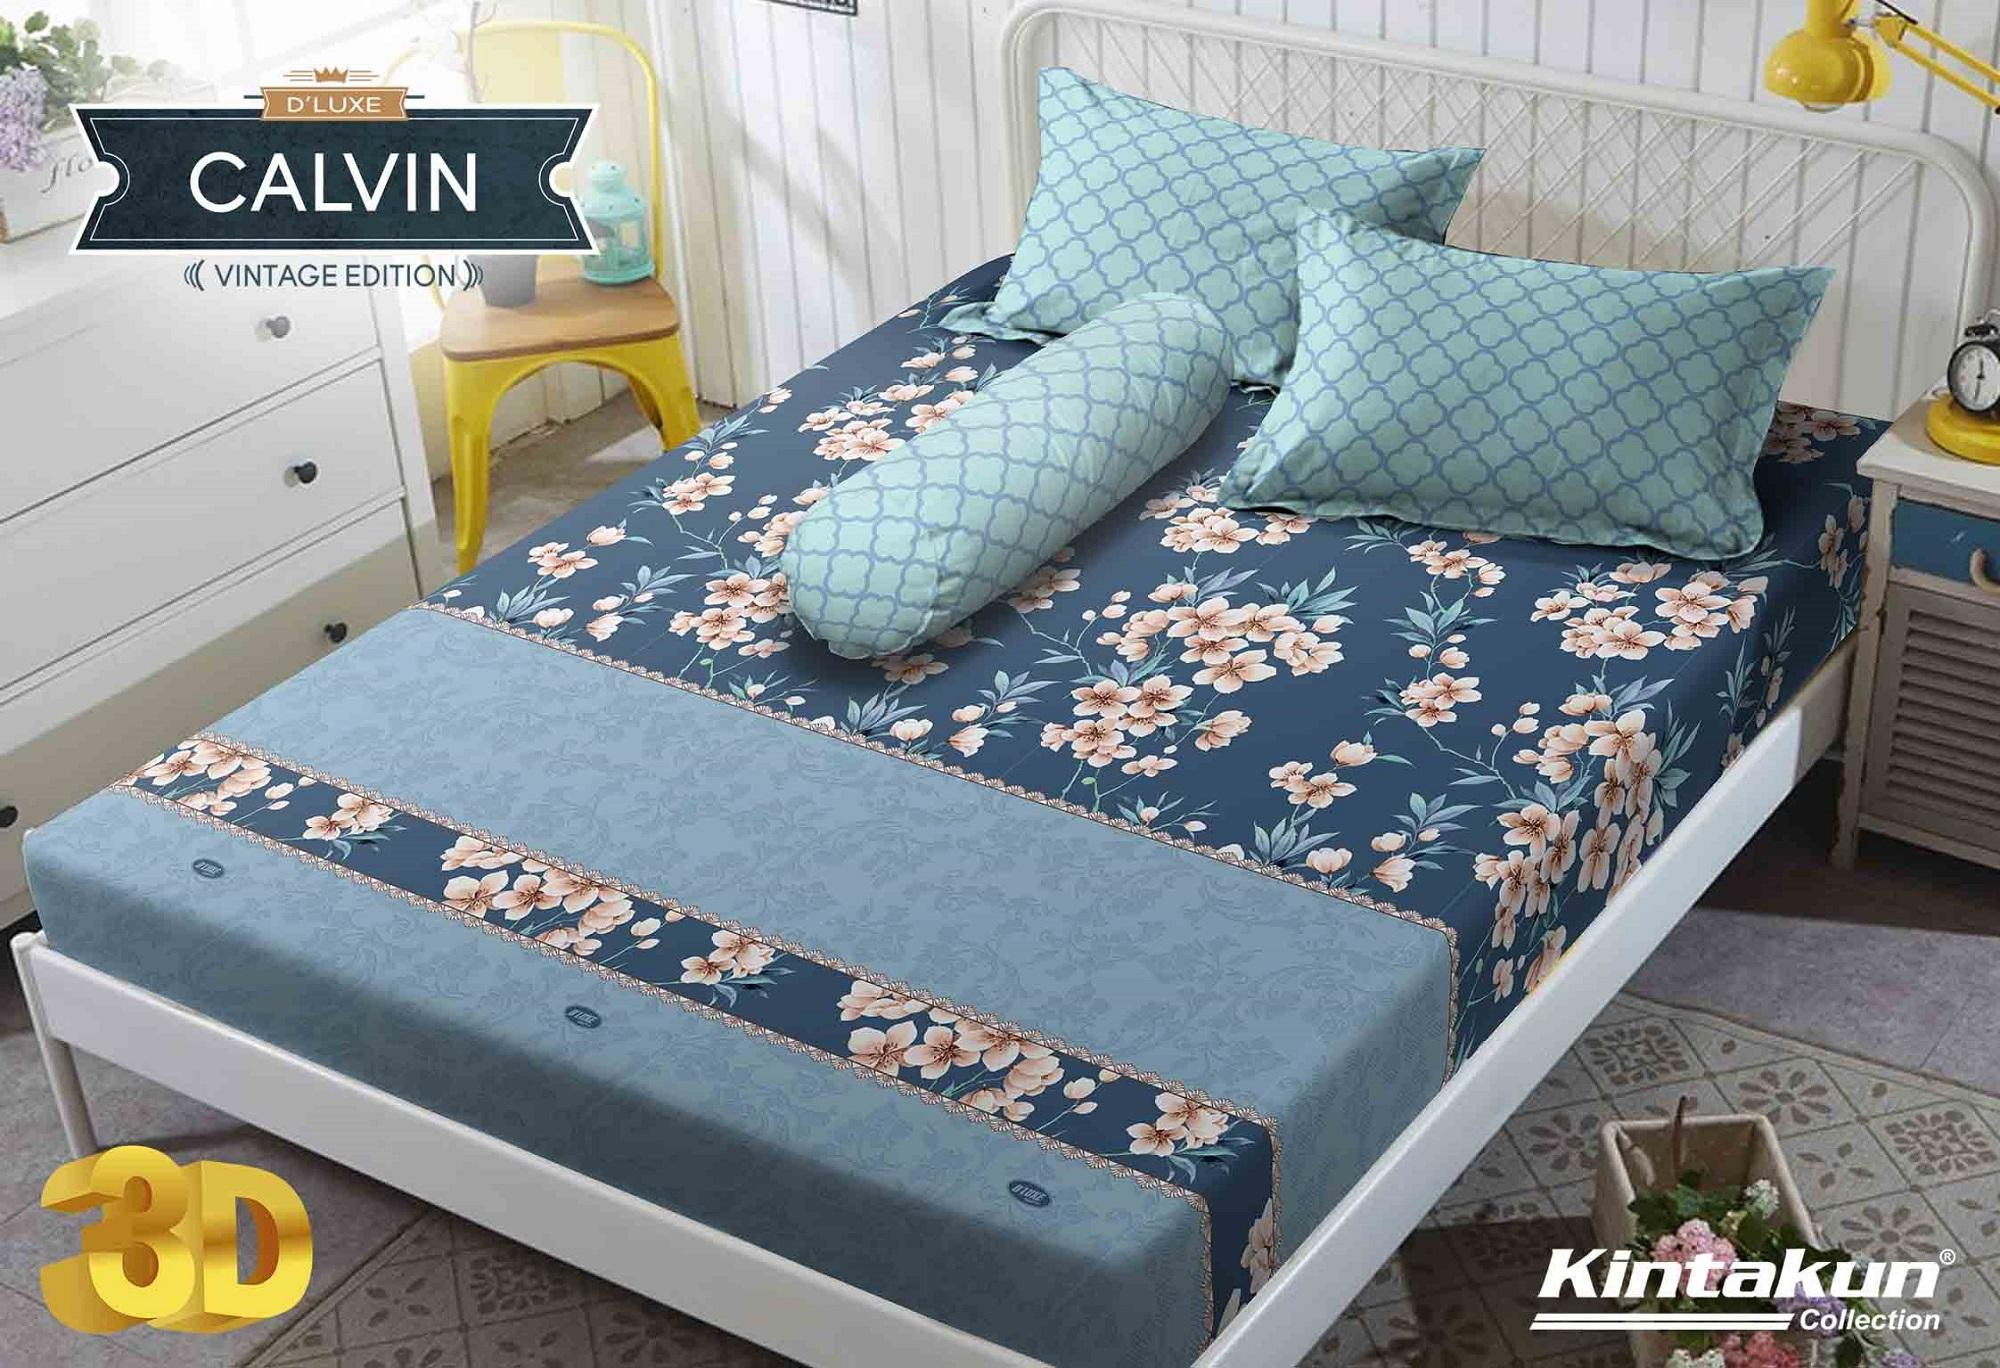 Sprei Kintakun DLuxe Single Size Vintage Edition Uk. 120x200 cm - Calvin